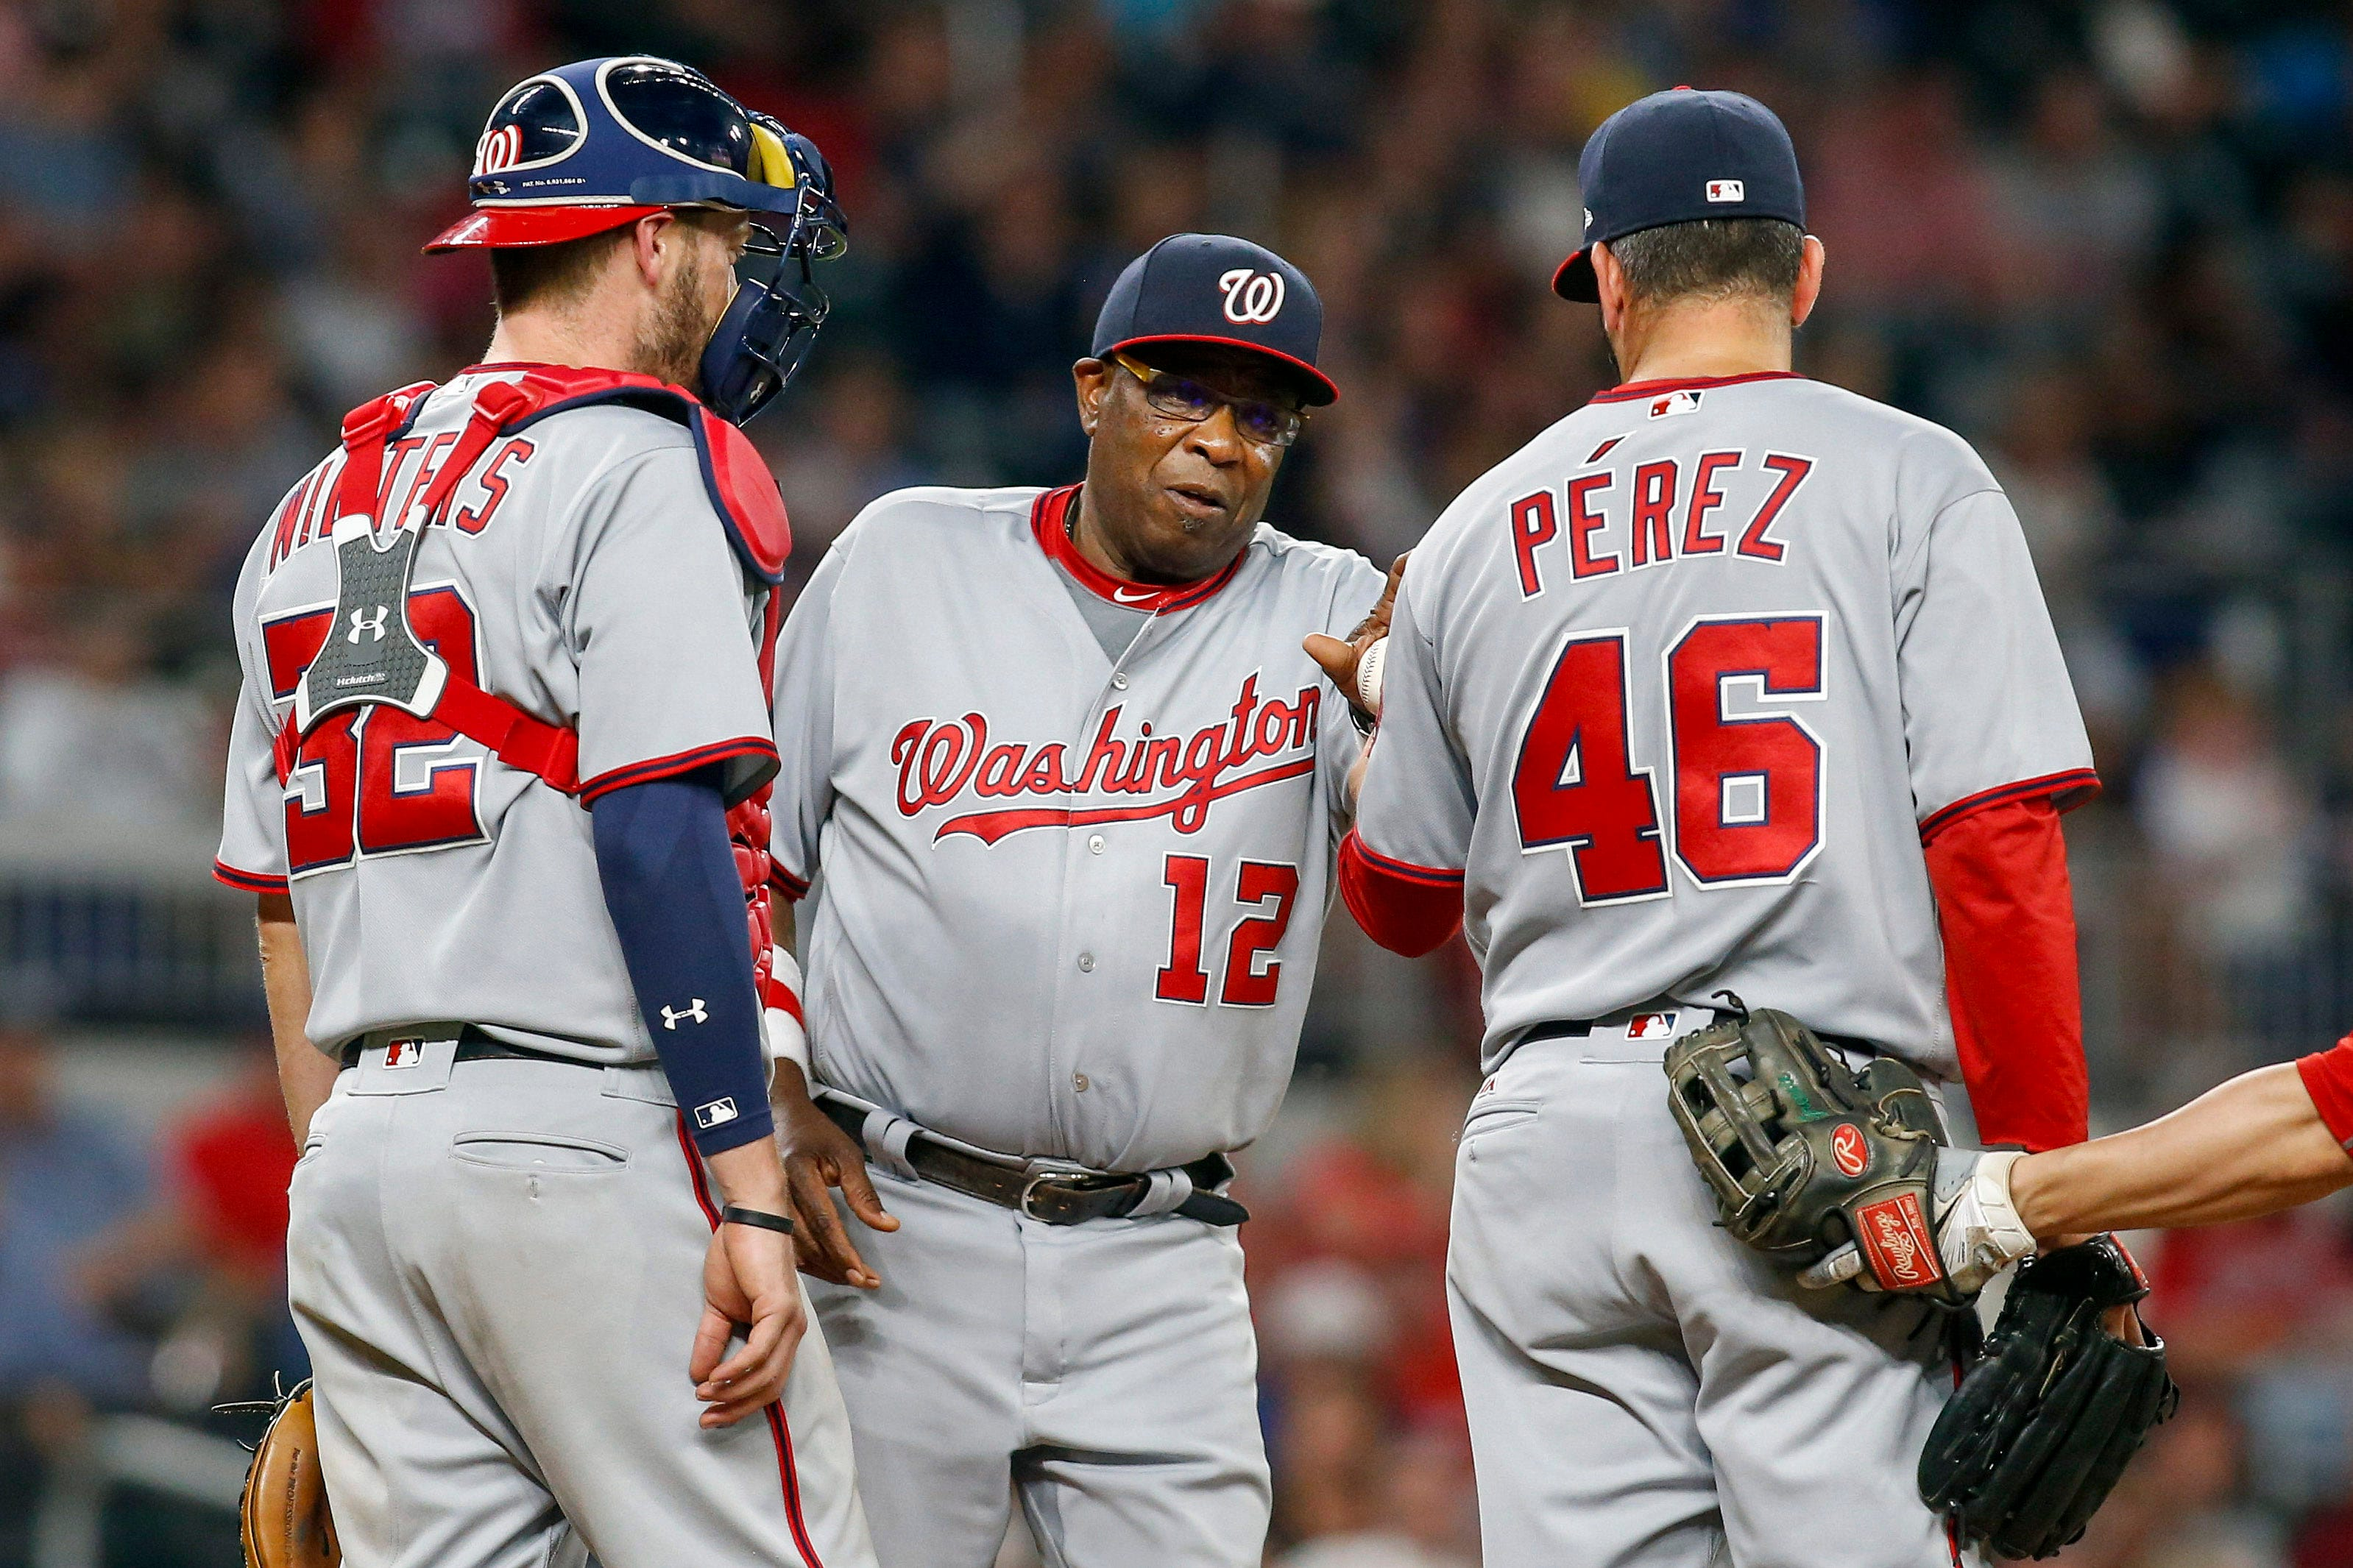 636309929831104101-USP-MLB--Washington-Nationals-at-Atlanta-Braves GM Mike Rizzo vows to fix long Nationals nightmare - their flailing bullpen